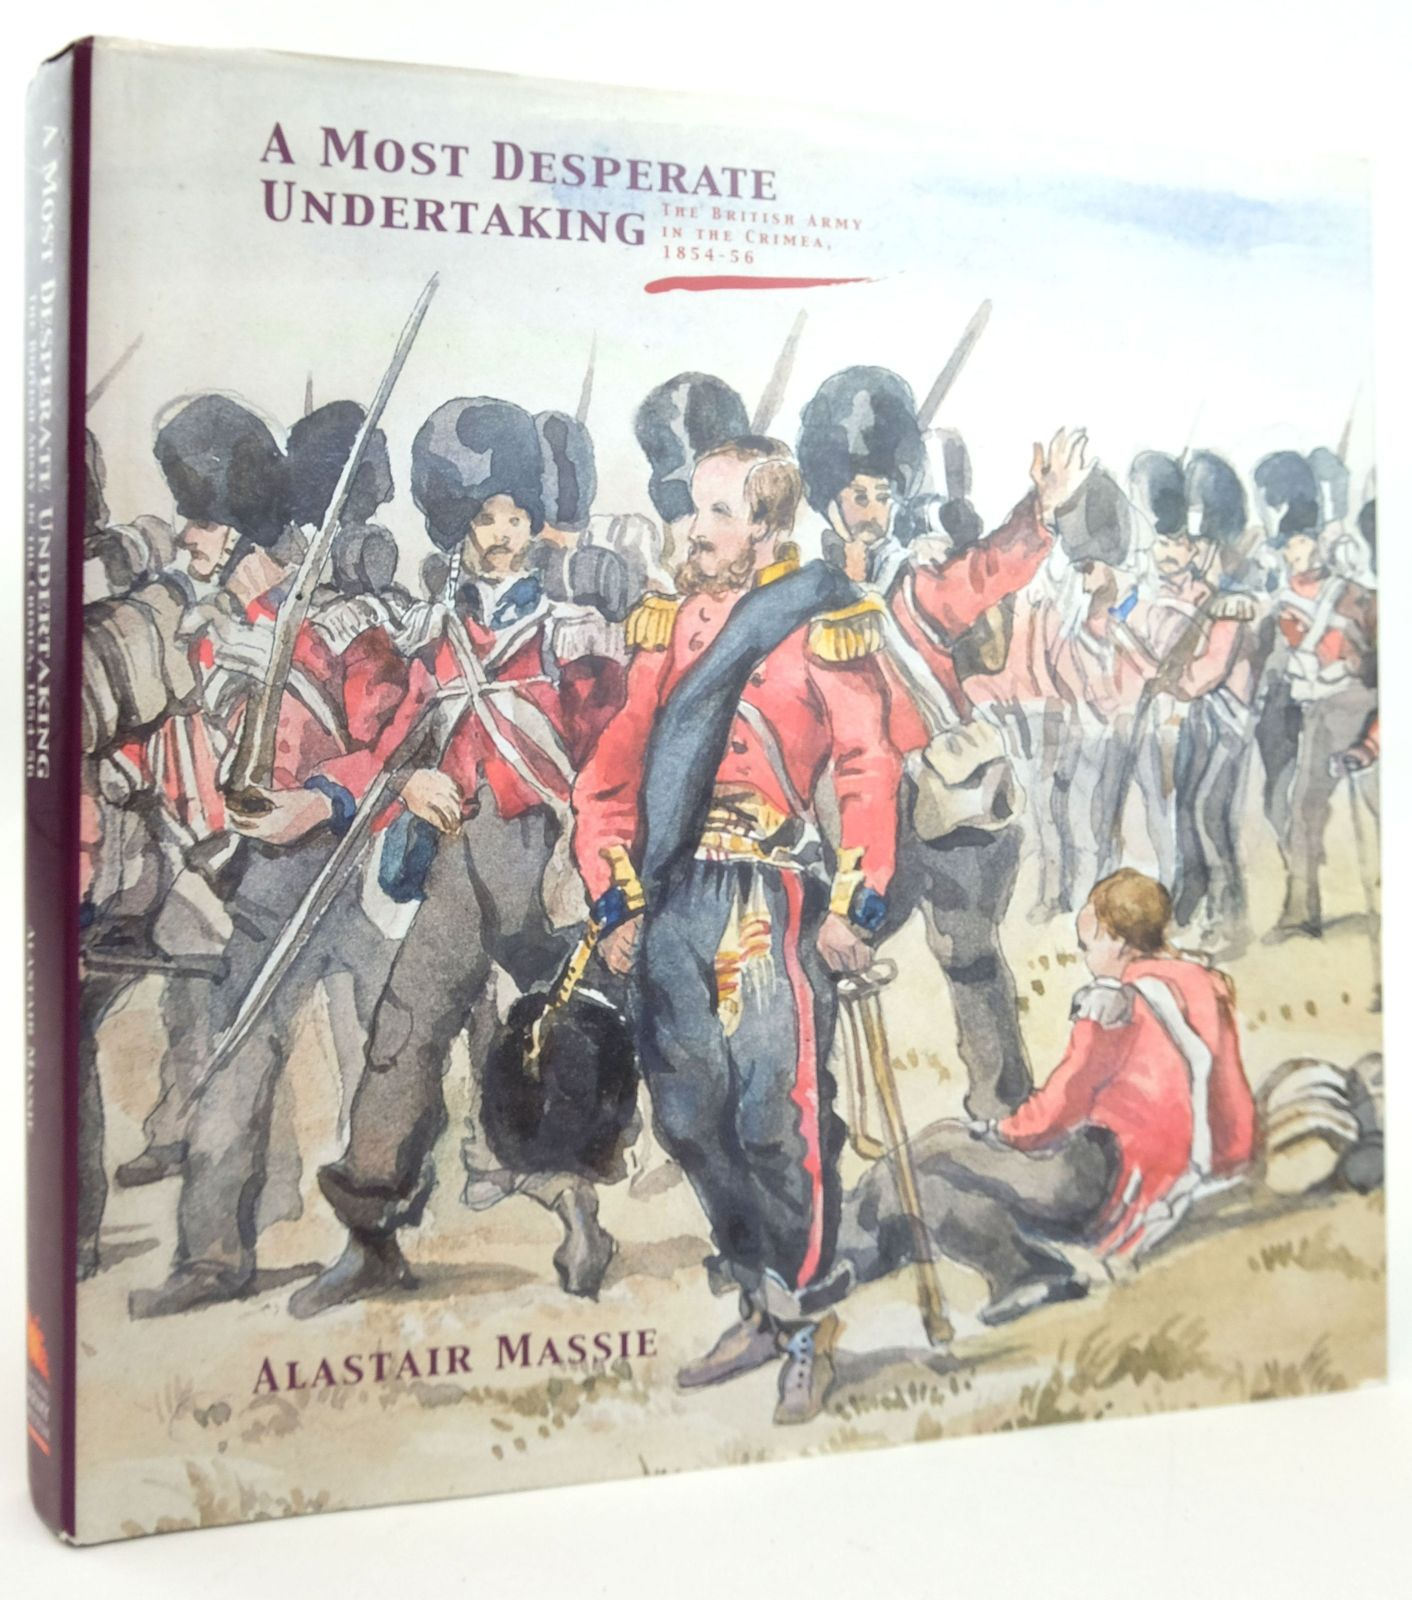 Photo of A MOST DESPERATE UNDERTAKING: THE BRITISH ARMY IN THE CRIMEA, 1854-56 written by Massie, Alastair published by National Army Museum (STOCK CODE: 1820101)  for sale by Stella & Rose's Books